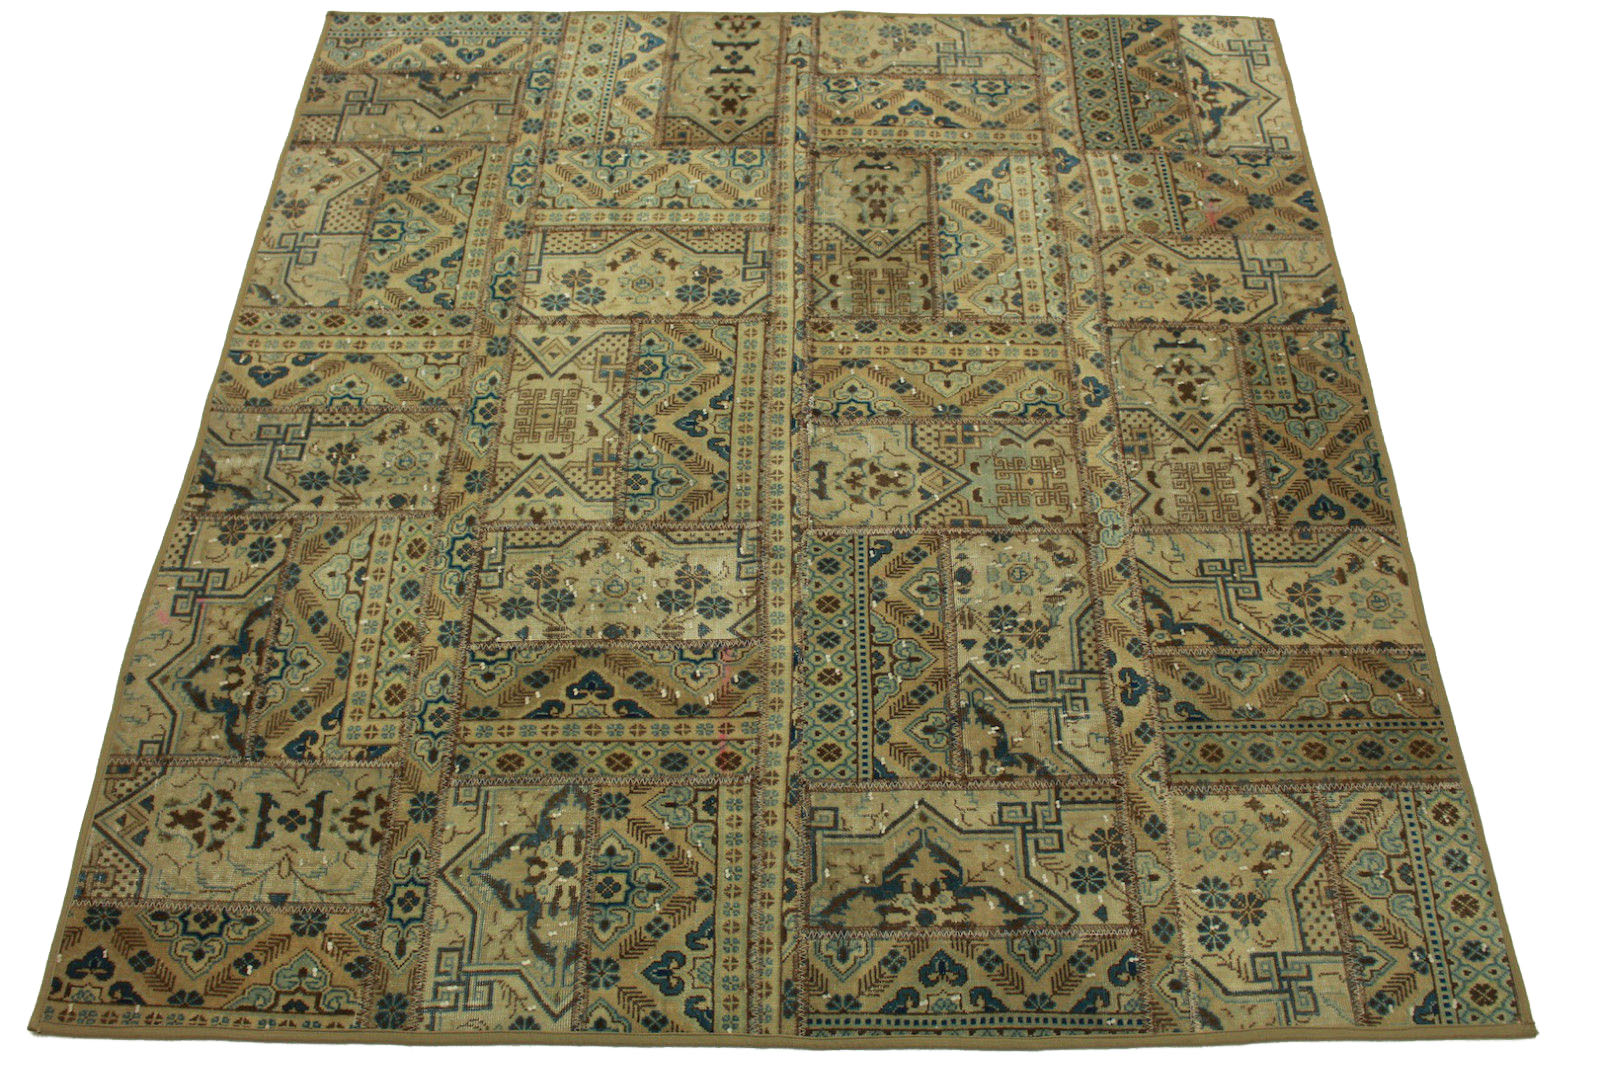 patchwork teppich blau beige in 200x180cm 1001 825 bei kaufen. Black Bedroom Furniture Sets. Home Design Ideas